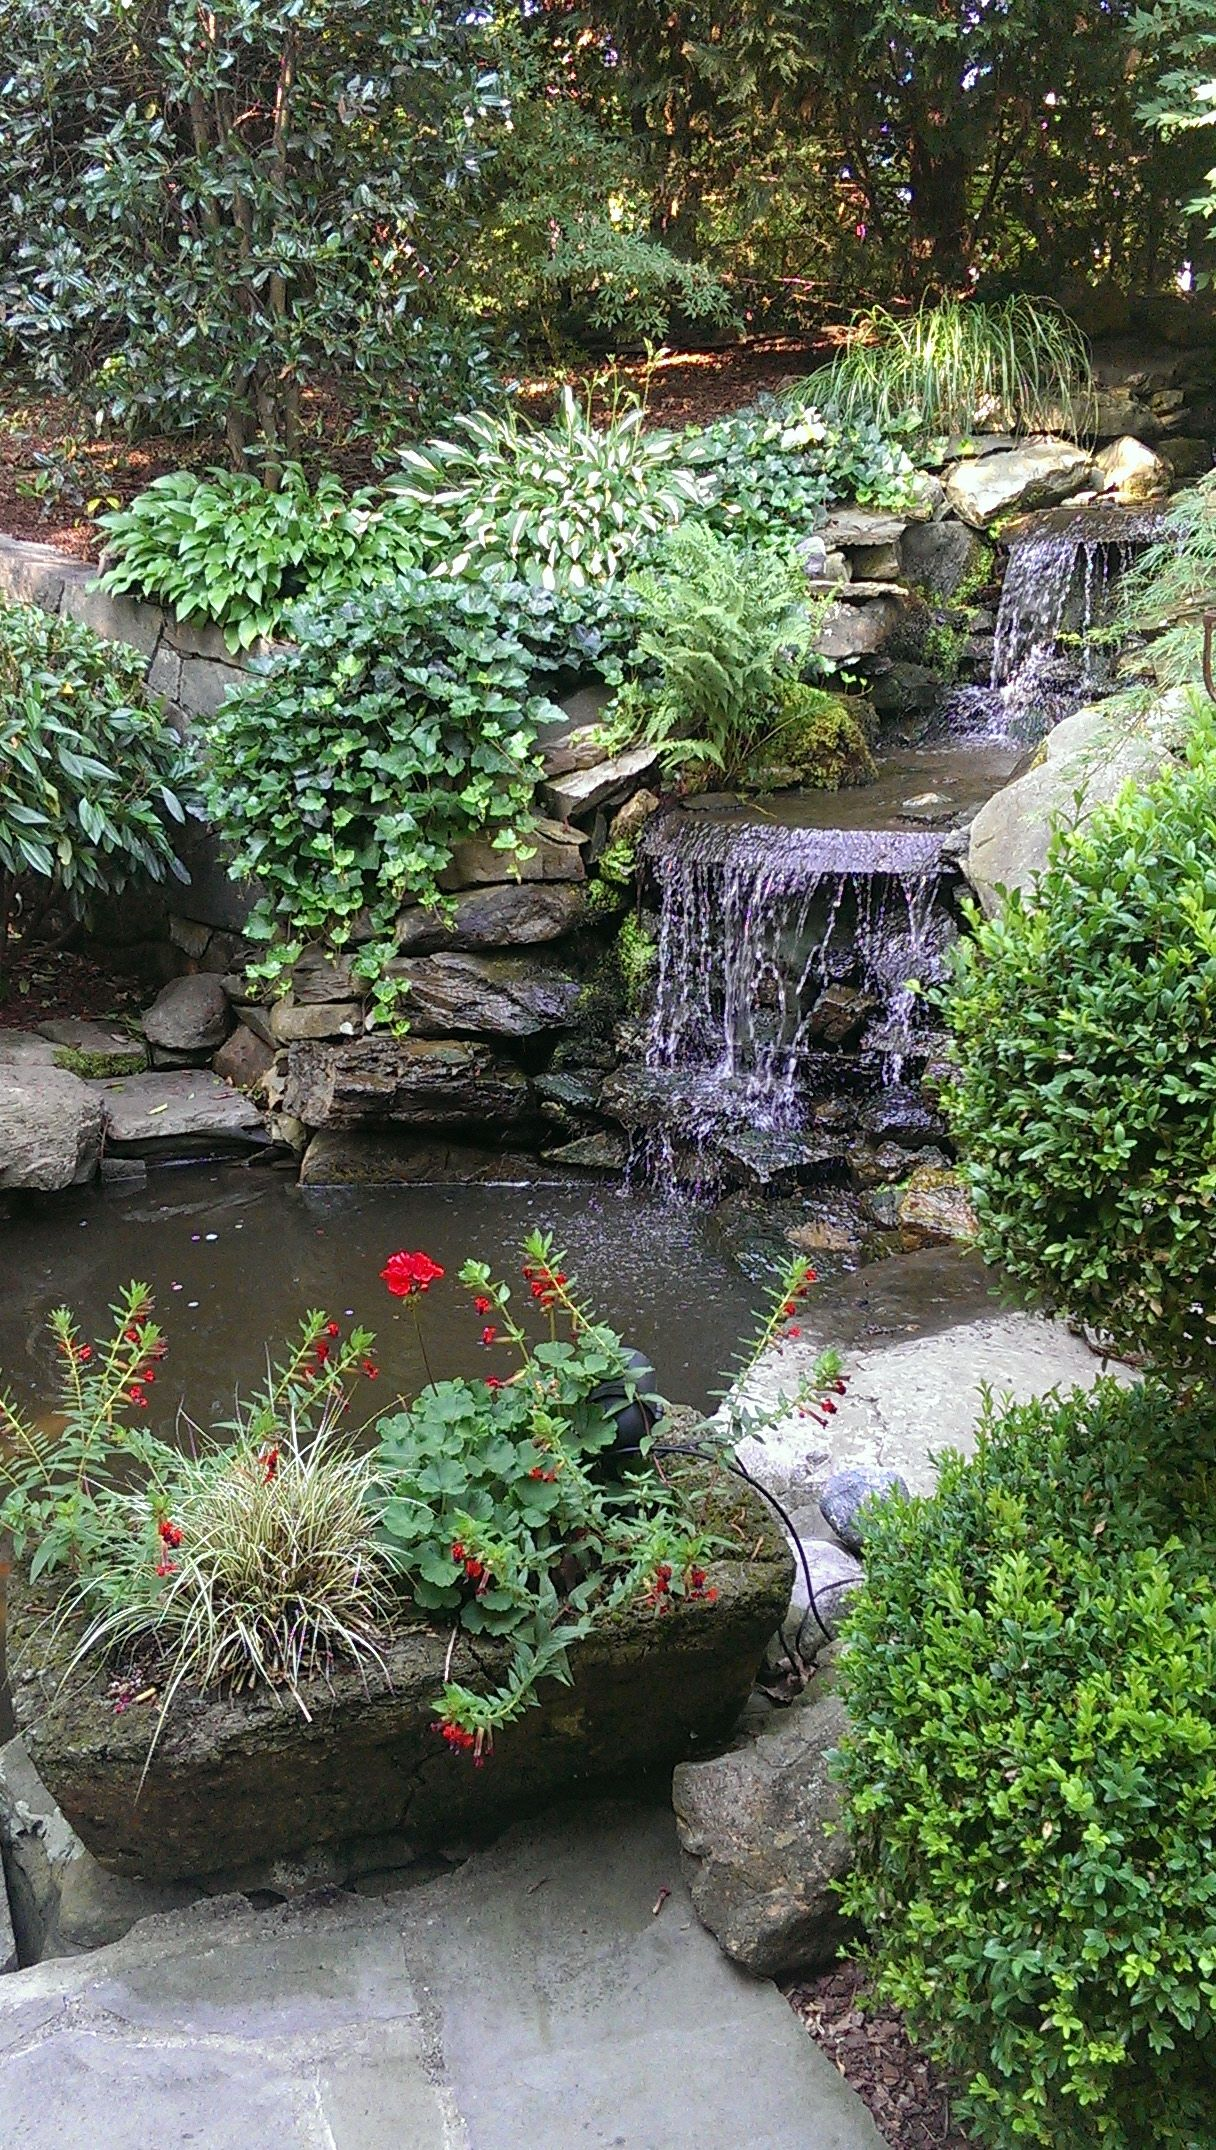 Beautiful water feature estanques jardines y terrasas for Estanque de agua para jardin